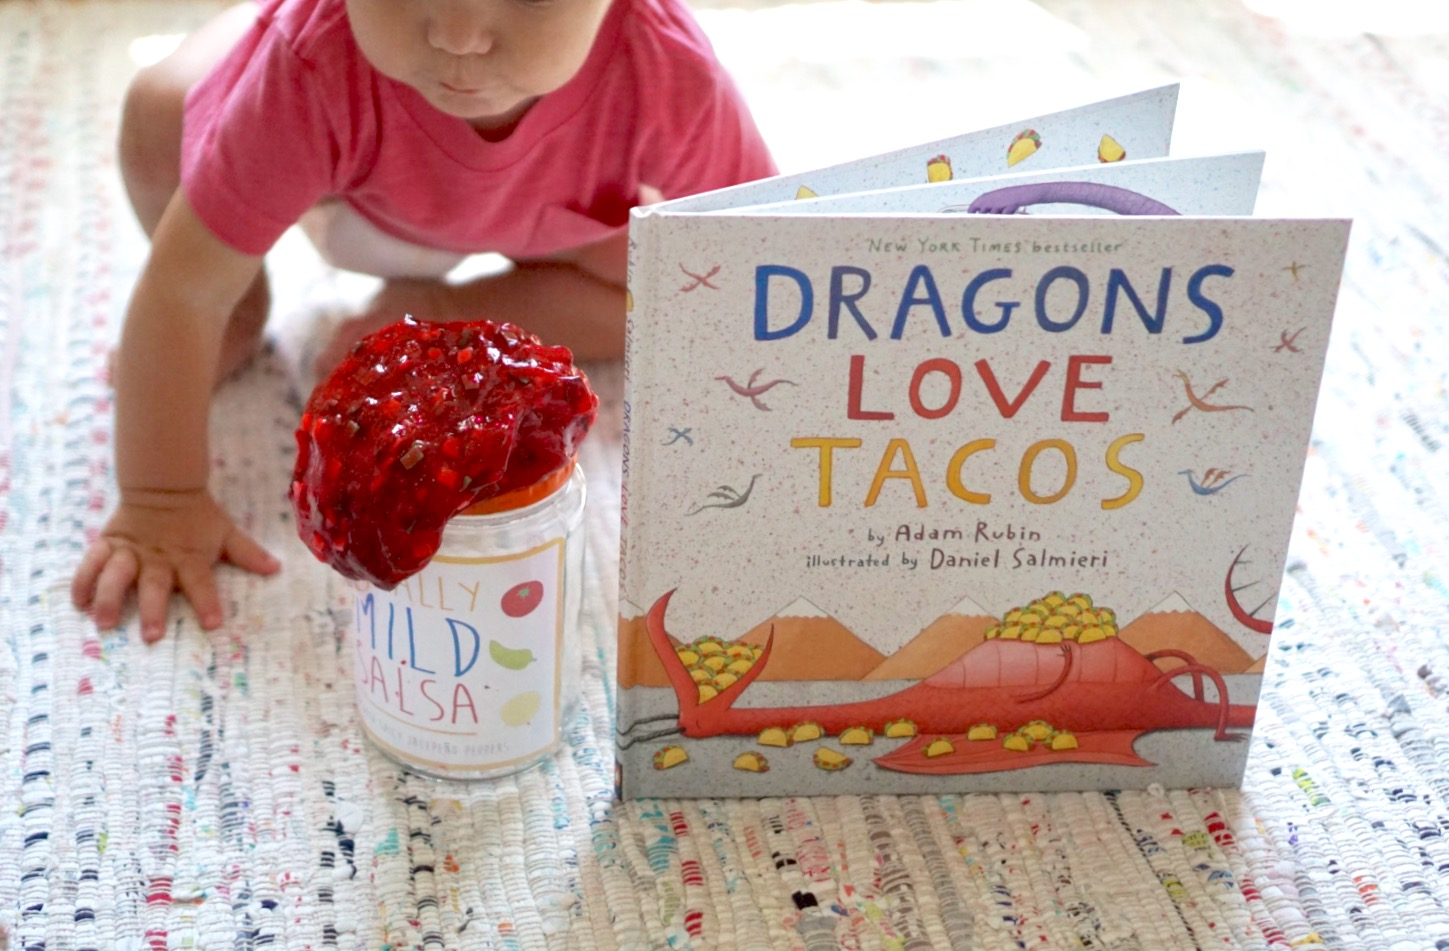 Free Printable Jar Label Sensory Activity for Toddlers Totally Mild Salsa Slime Recipe Dragons Love Tacos Book Box